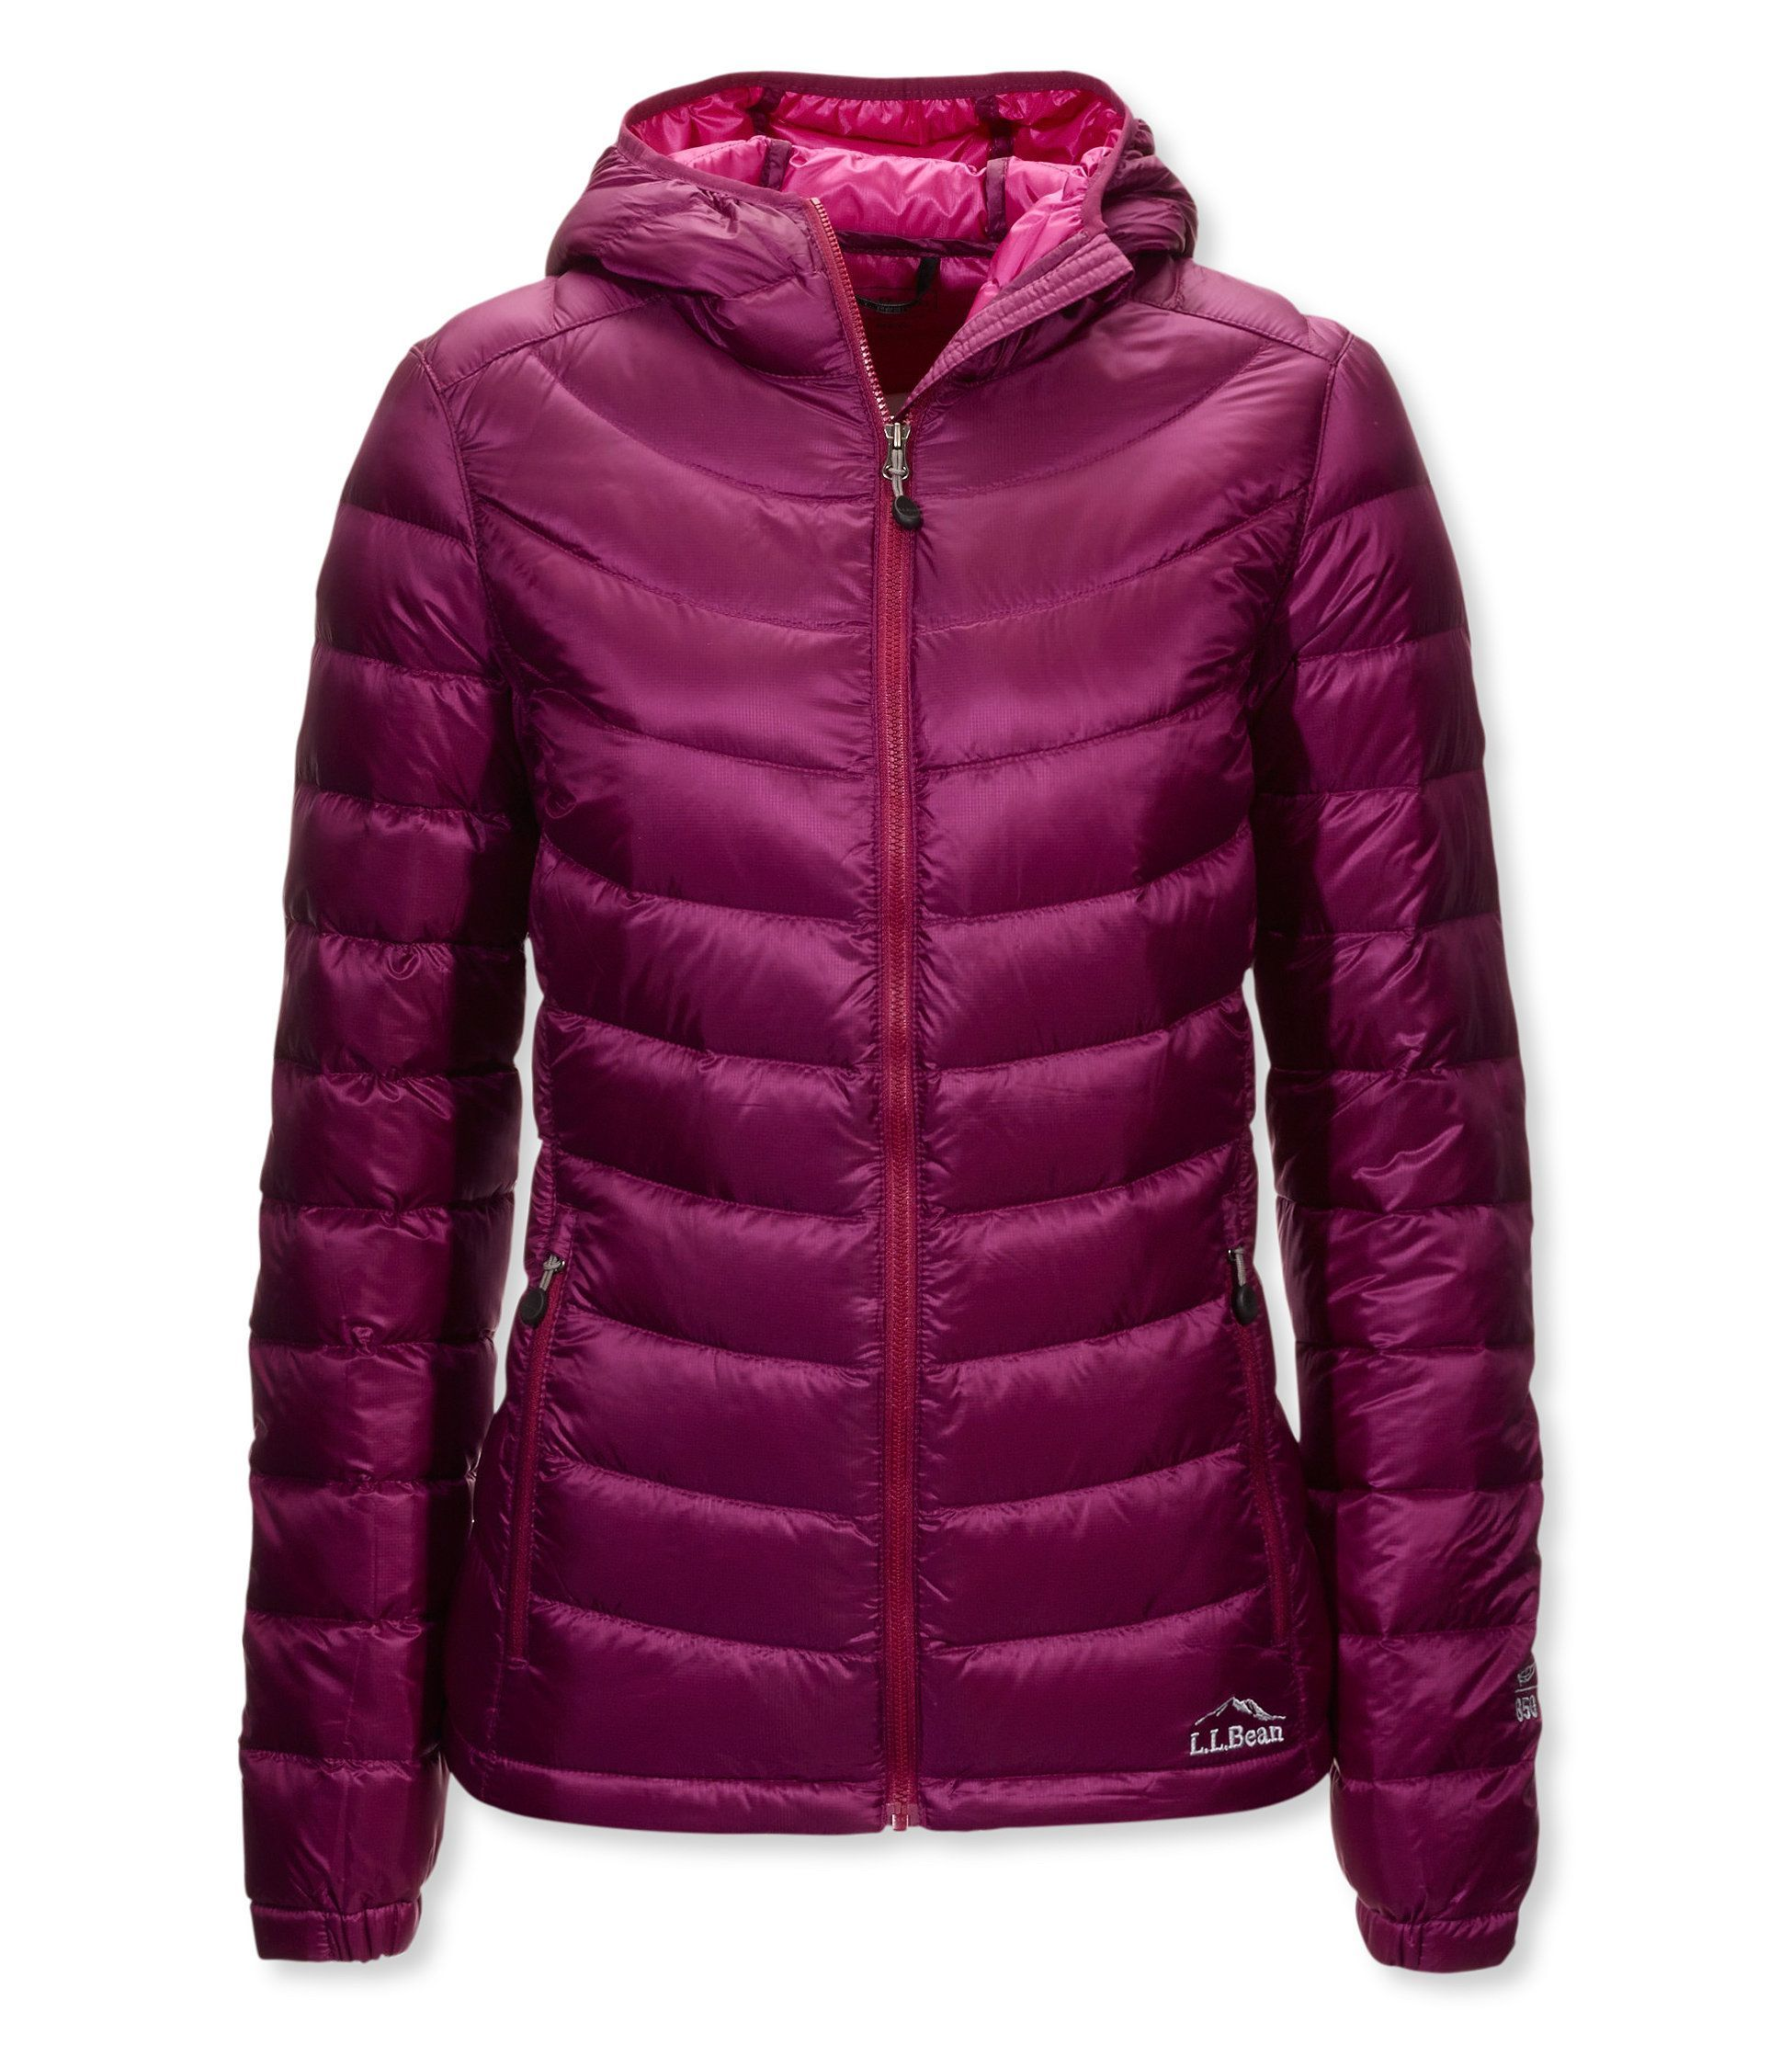 Women's Ultralight 850 Down Hooded Jacket | Jackets